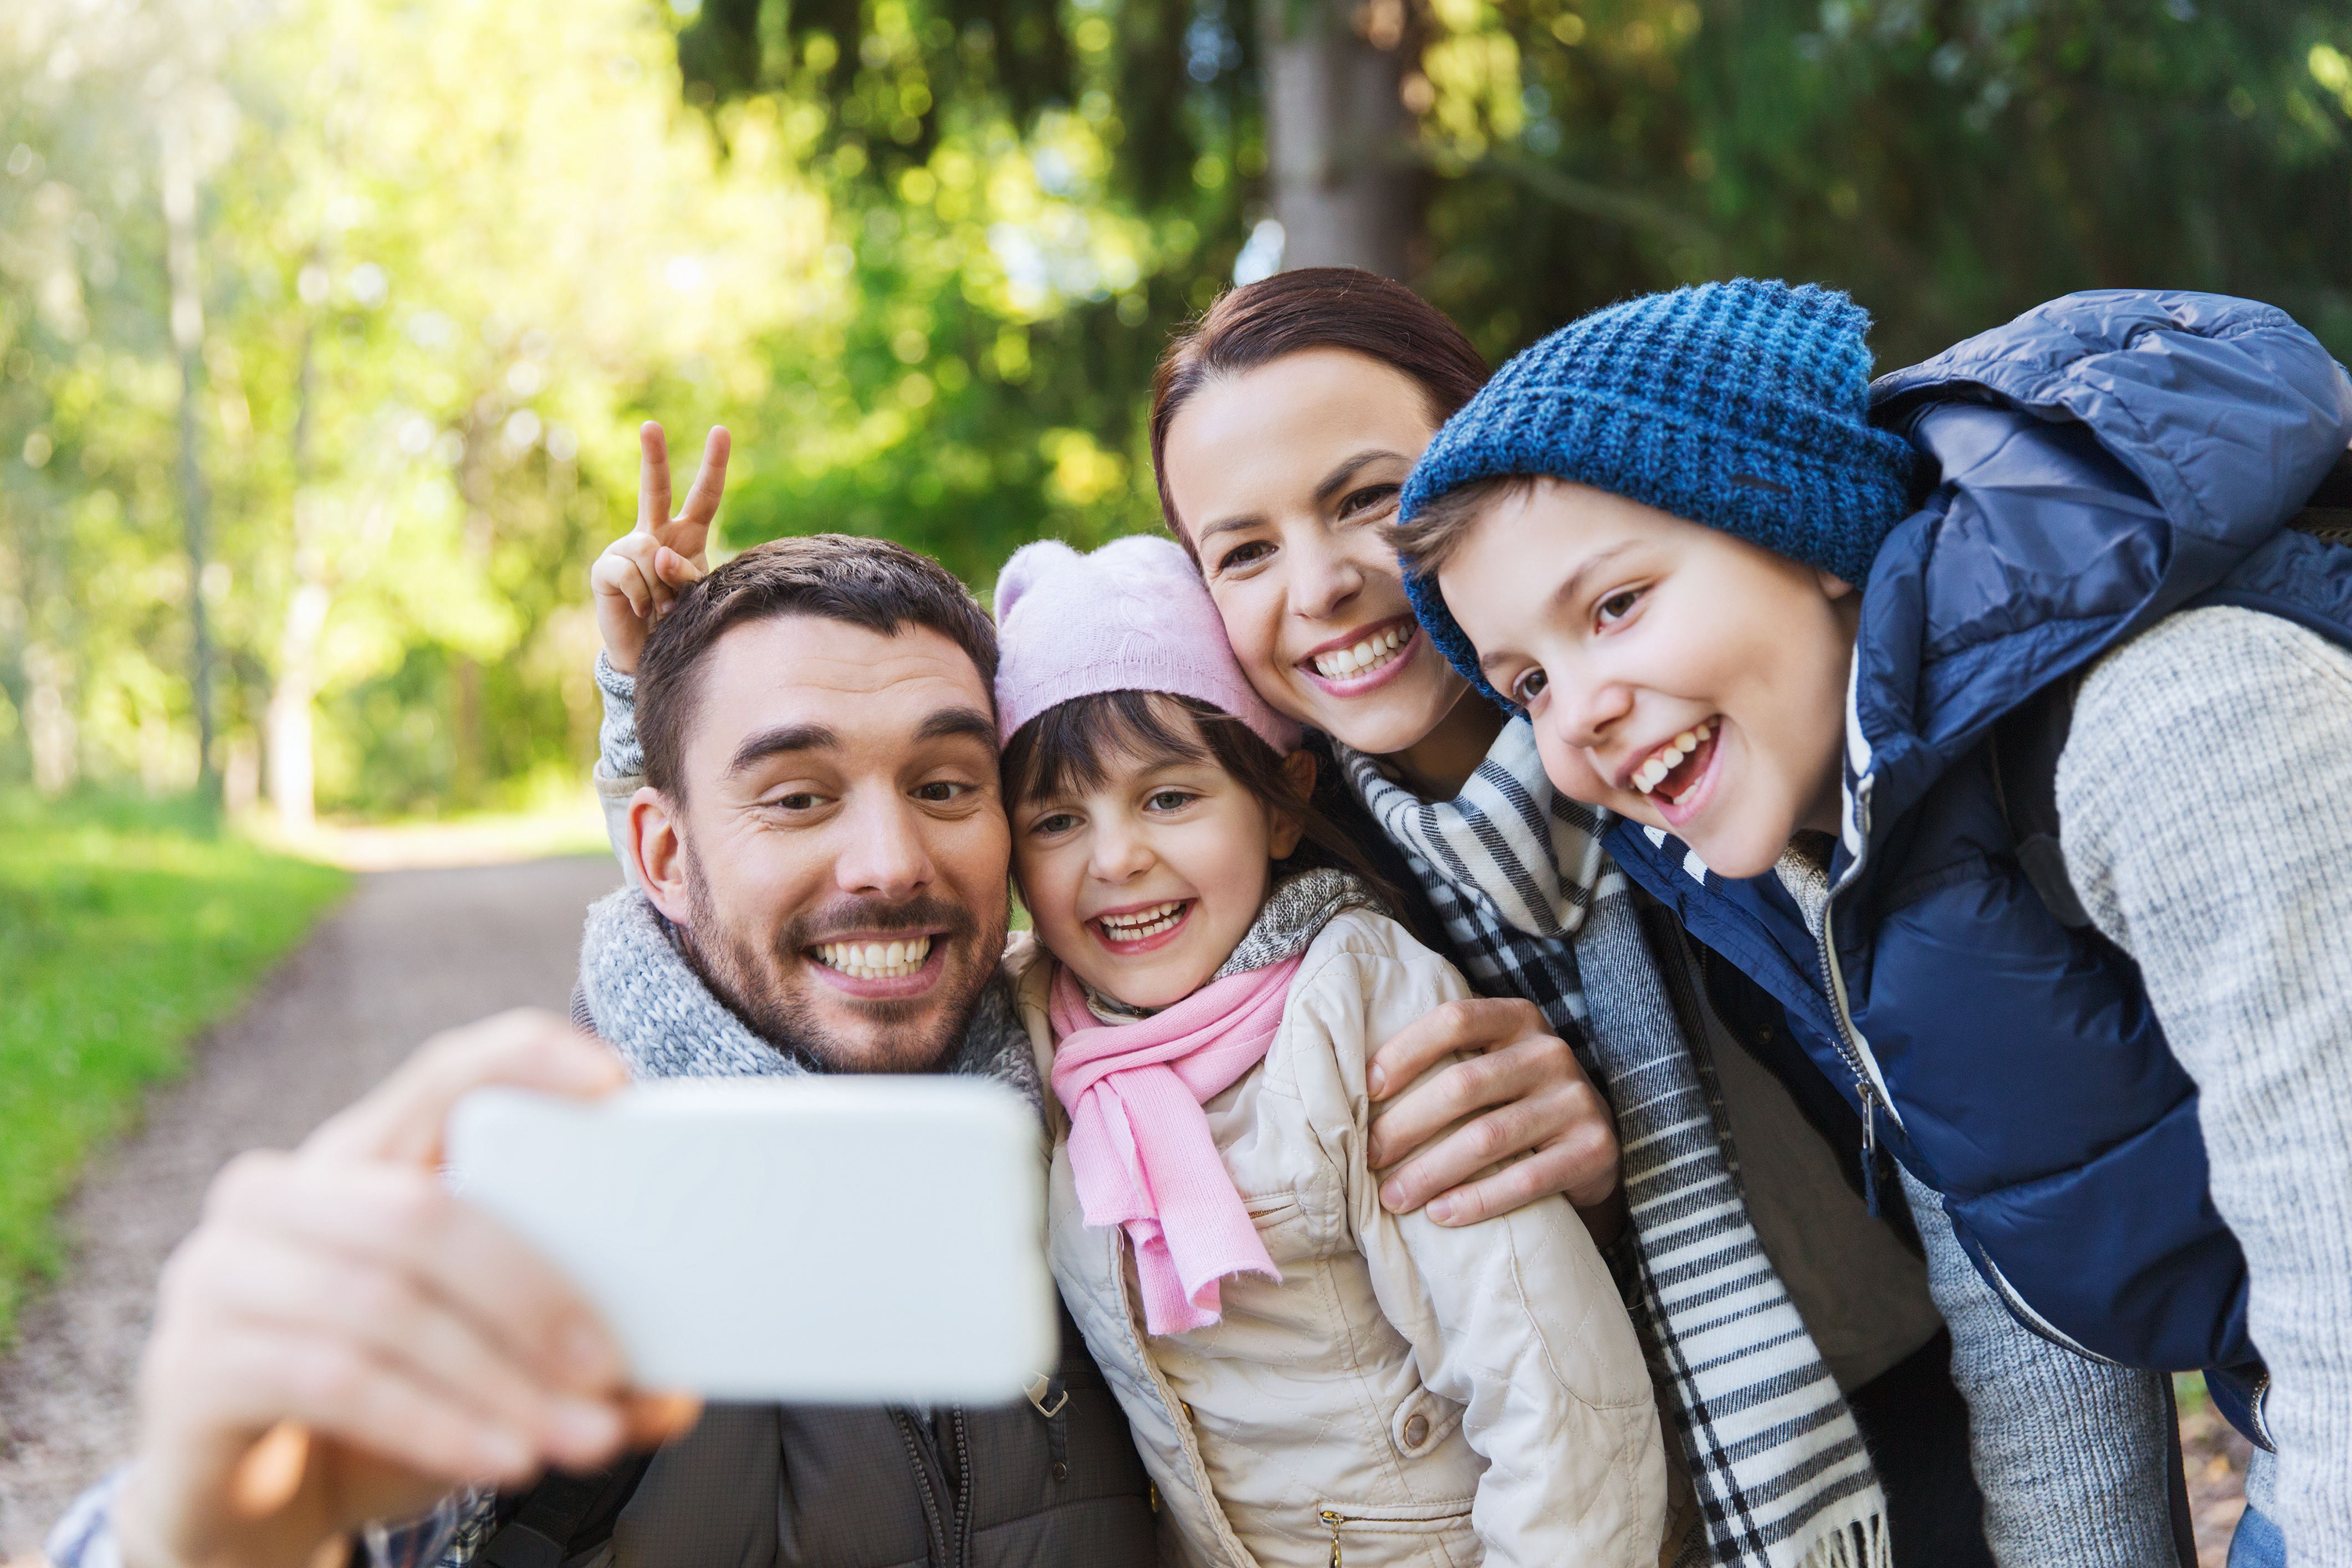 4 Outdoor Parents You Should Follow on Instagram - FamilyEducation